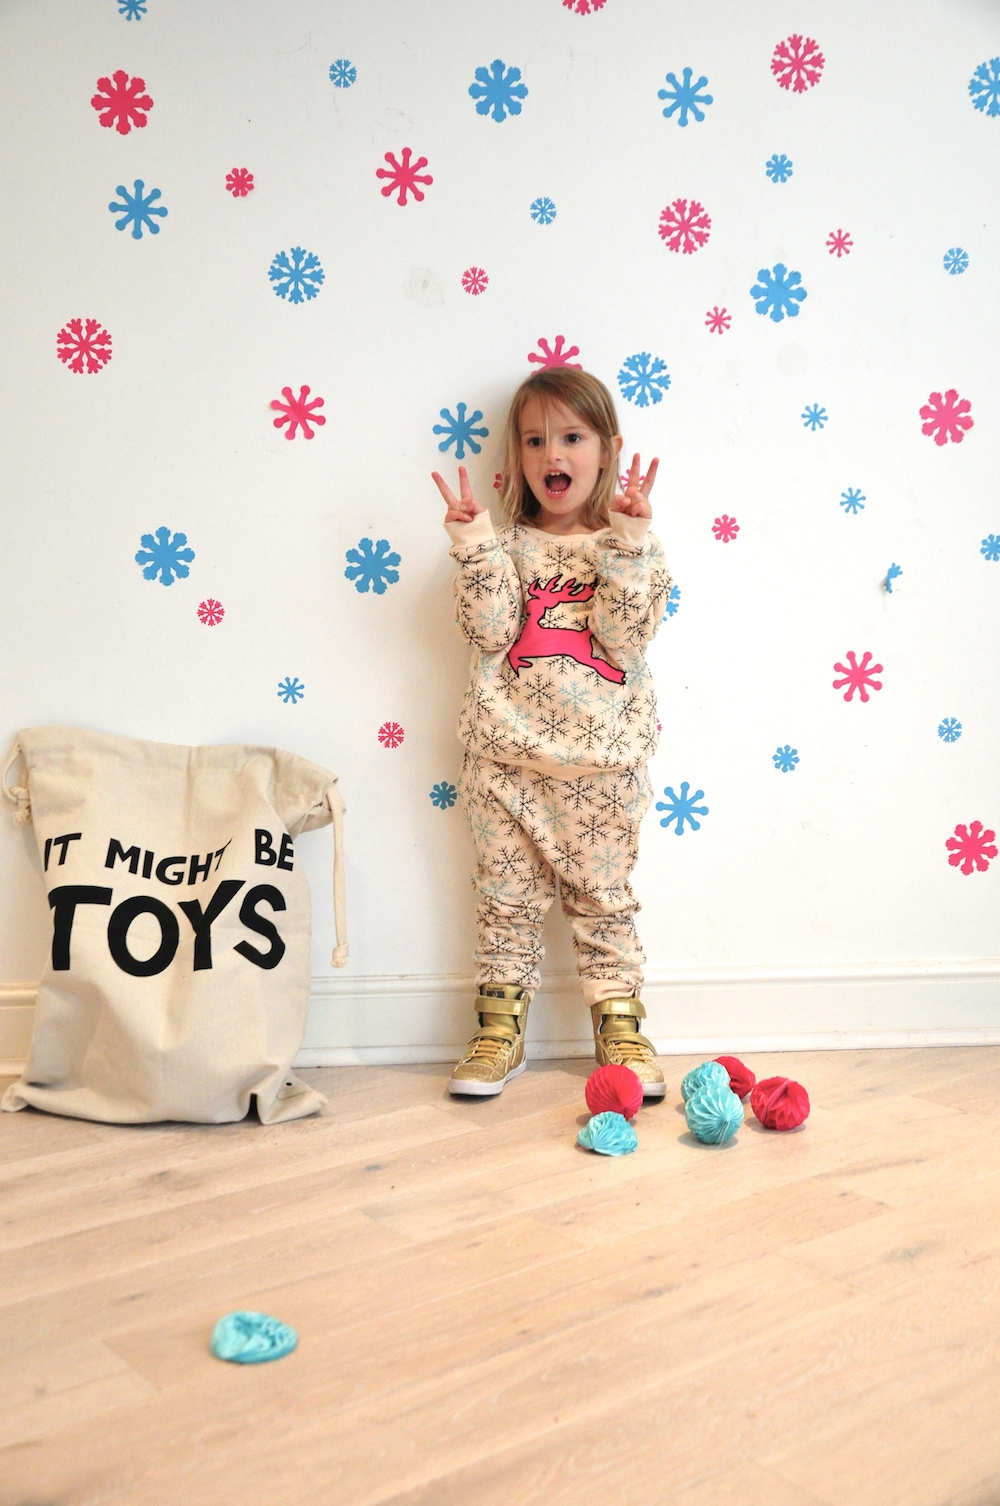 Gardner_and_the_gang_harrods_miniharrods_Christmas_tellkiddo_kidsen_36